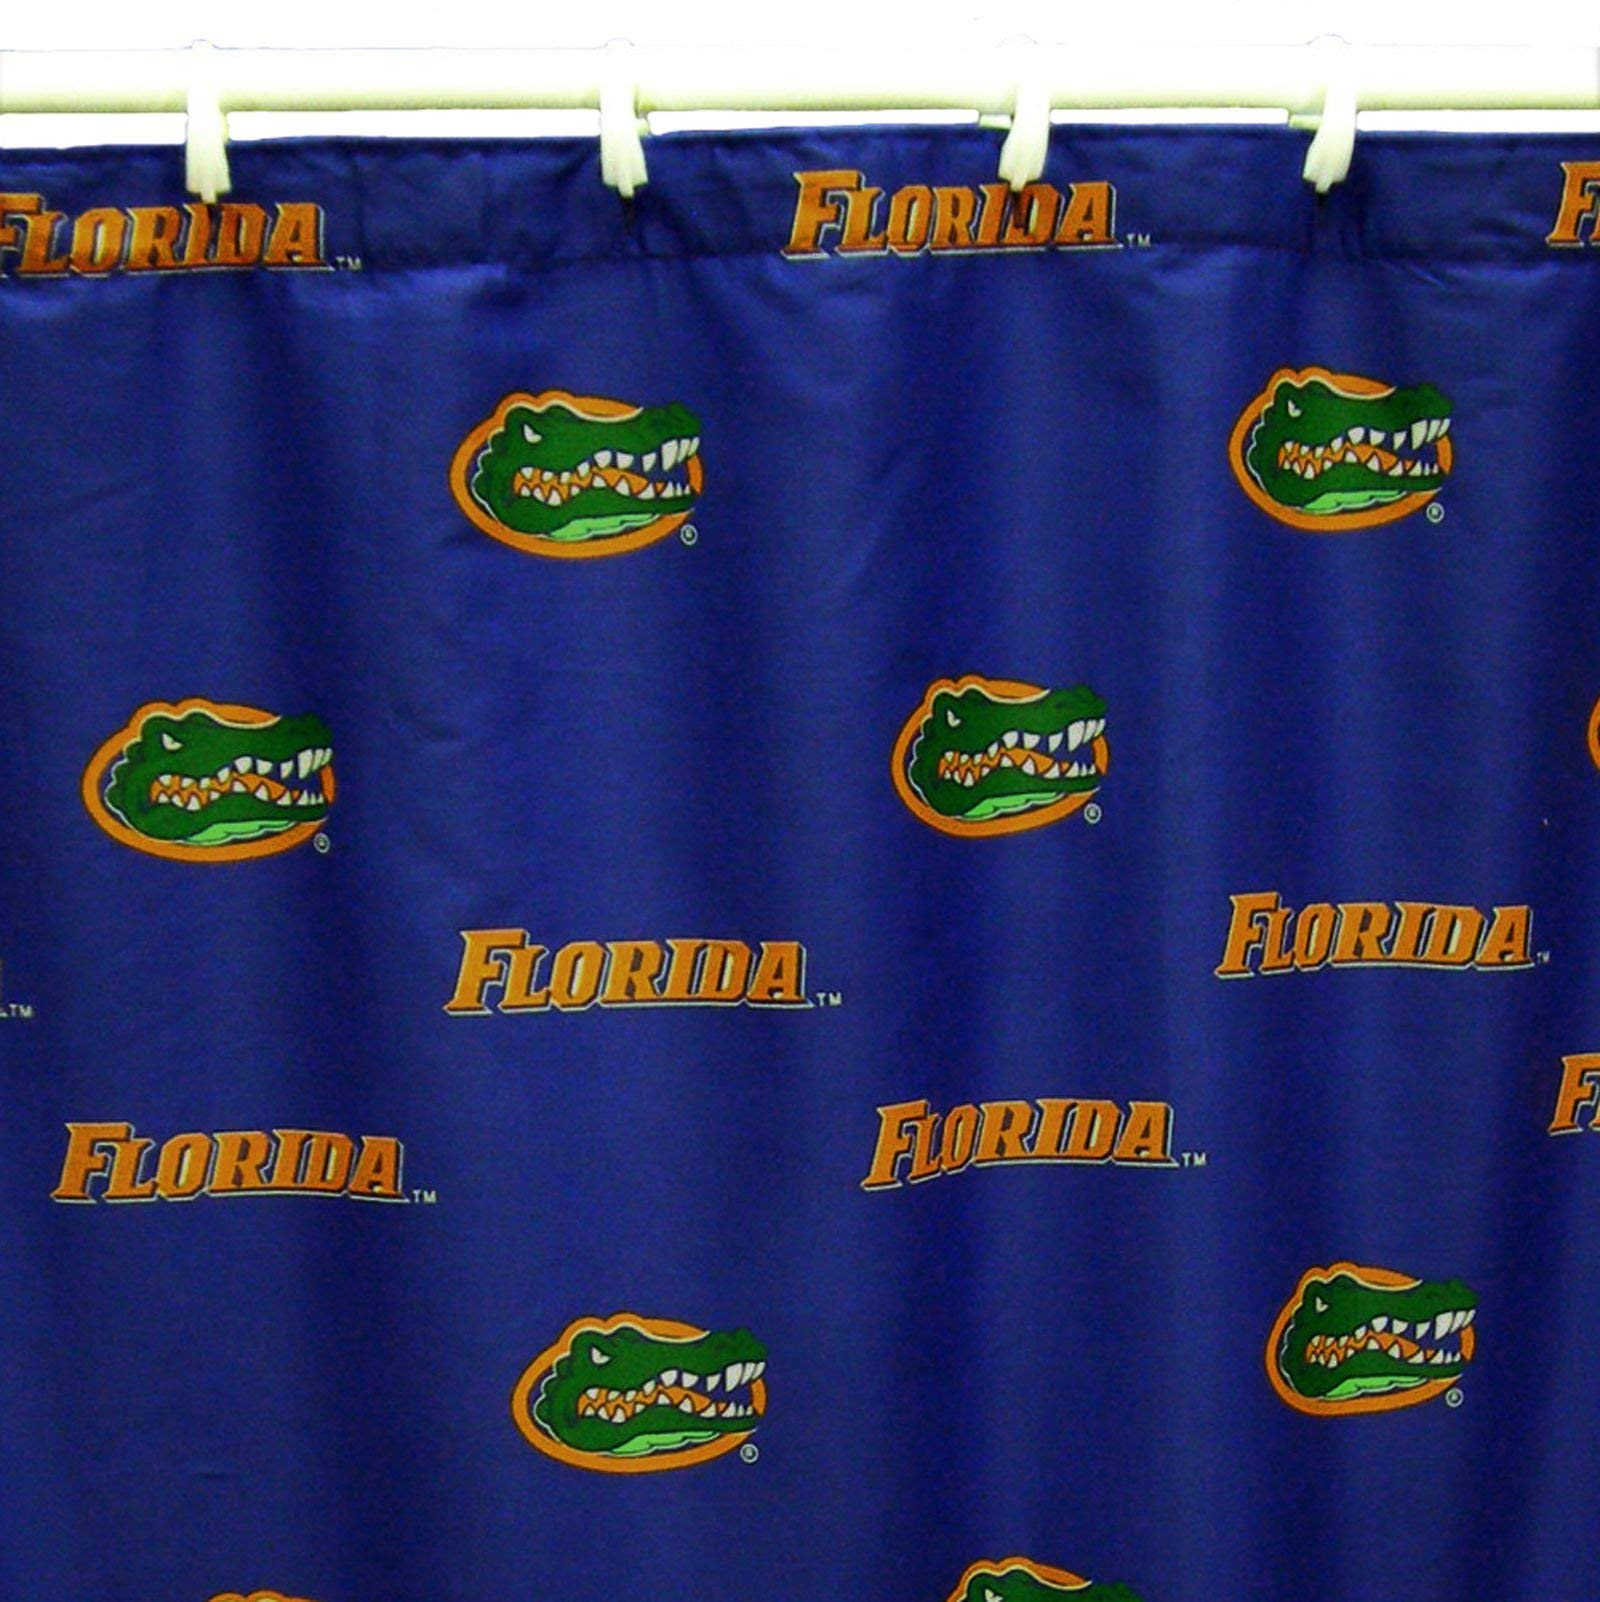 College Covers Shower Curtain Cover, 70'' x 72'', Florida Gators by College Covers